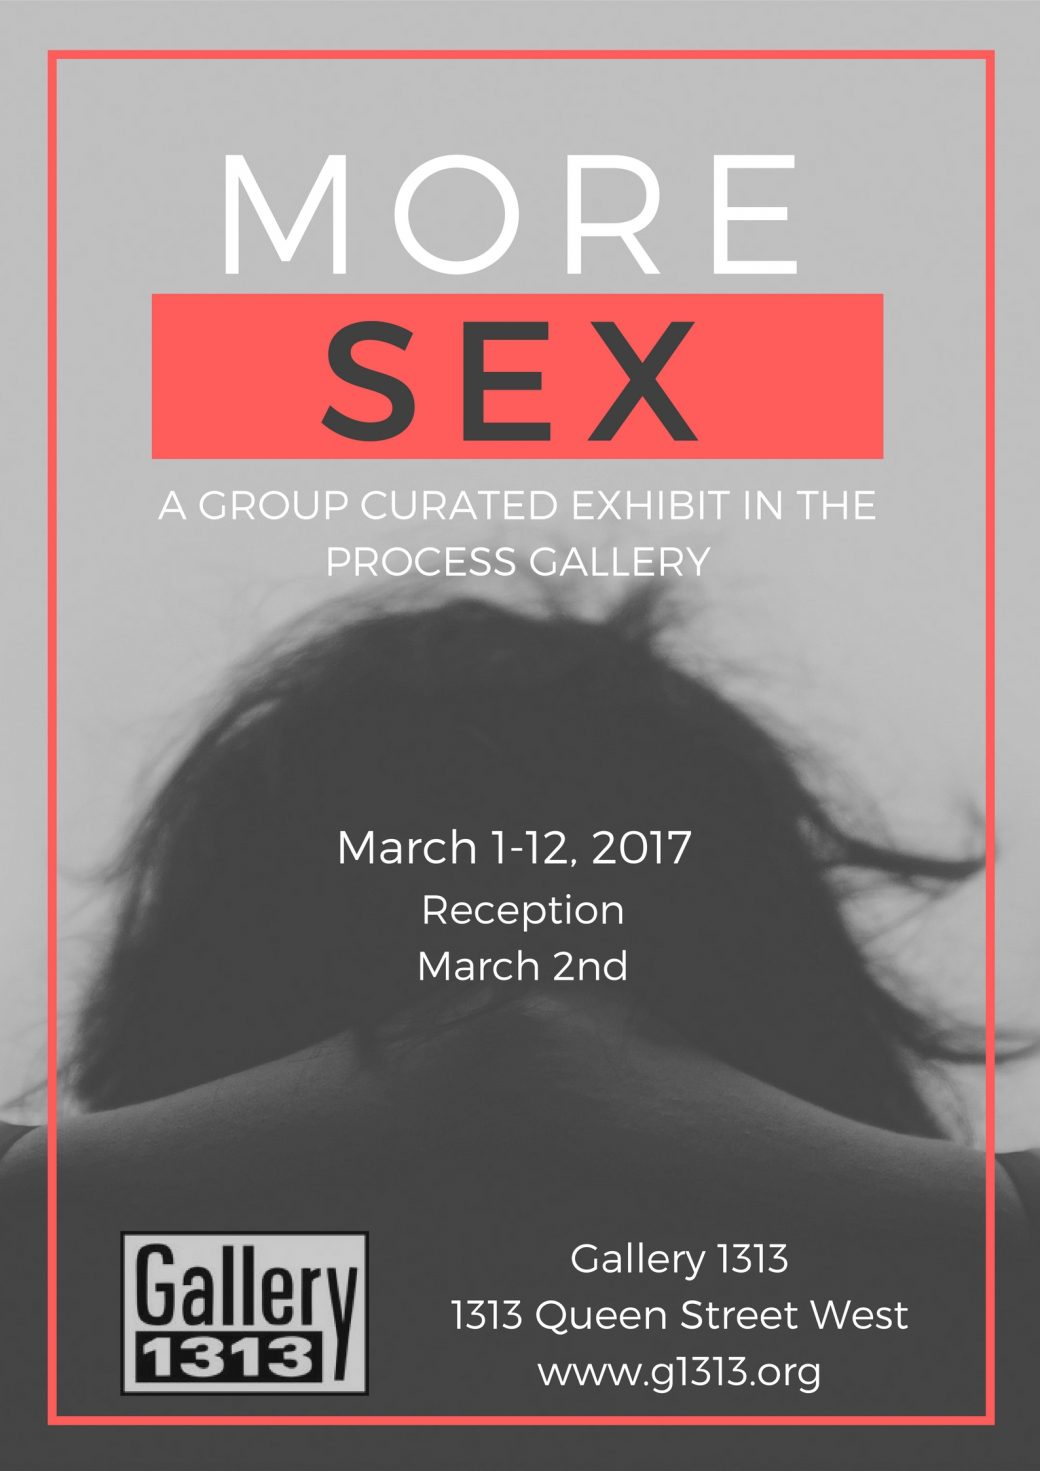 MORE SEX March 1-12